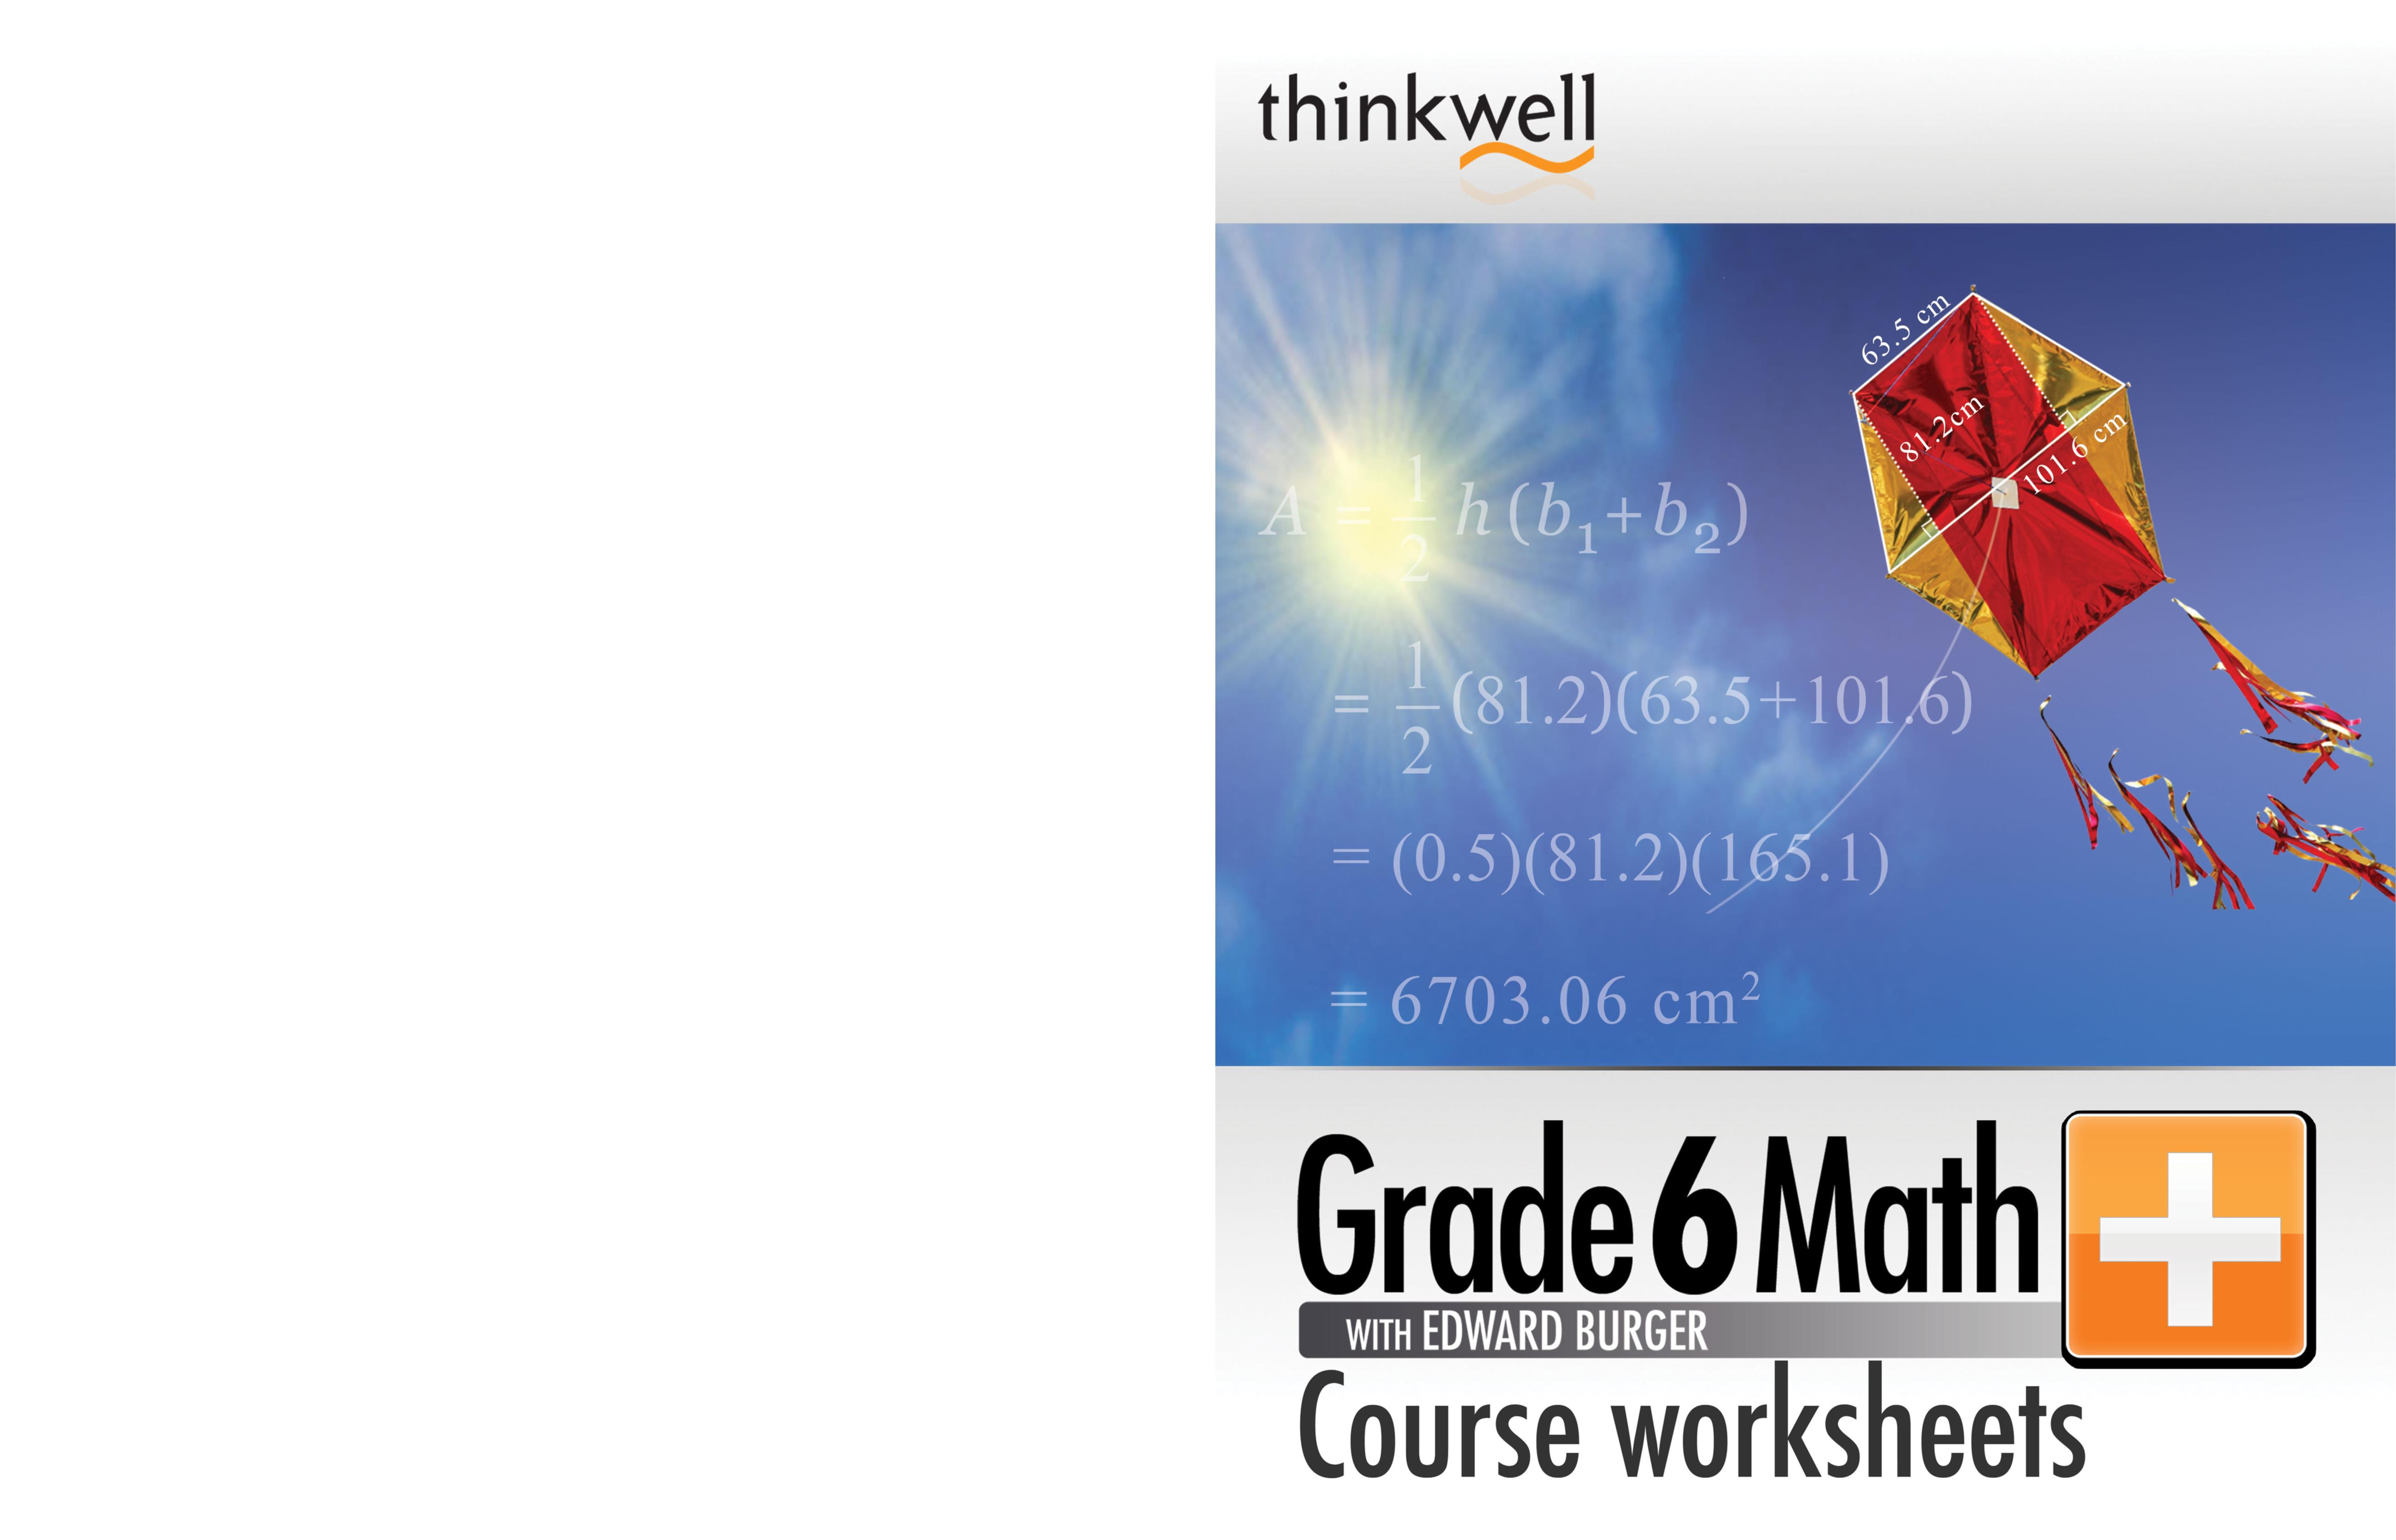 Thinkwell Grade 6 Math Worksheets And Answer Keys By